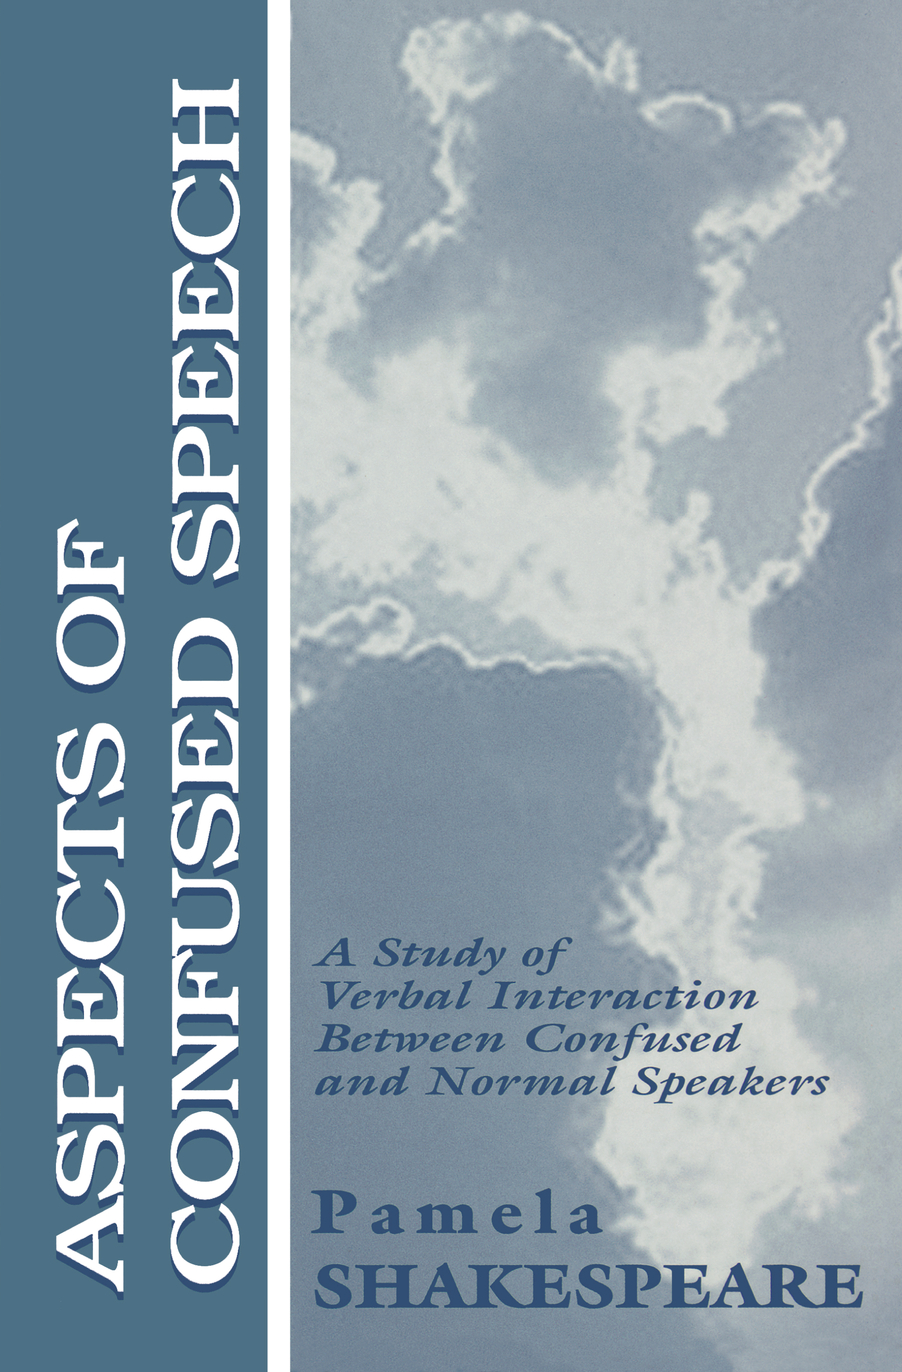 Aspects of Confused Speech A Study of Verbal Interaction Between Confused and Normal Speakers